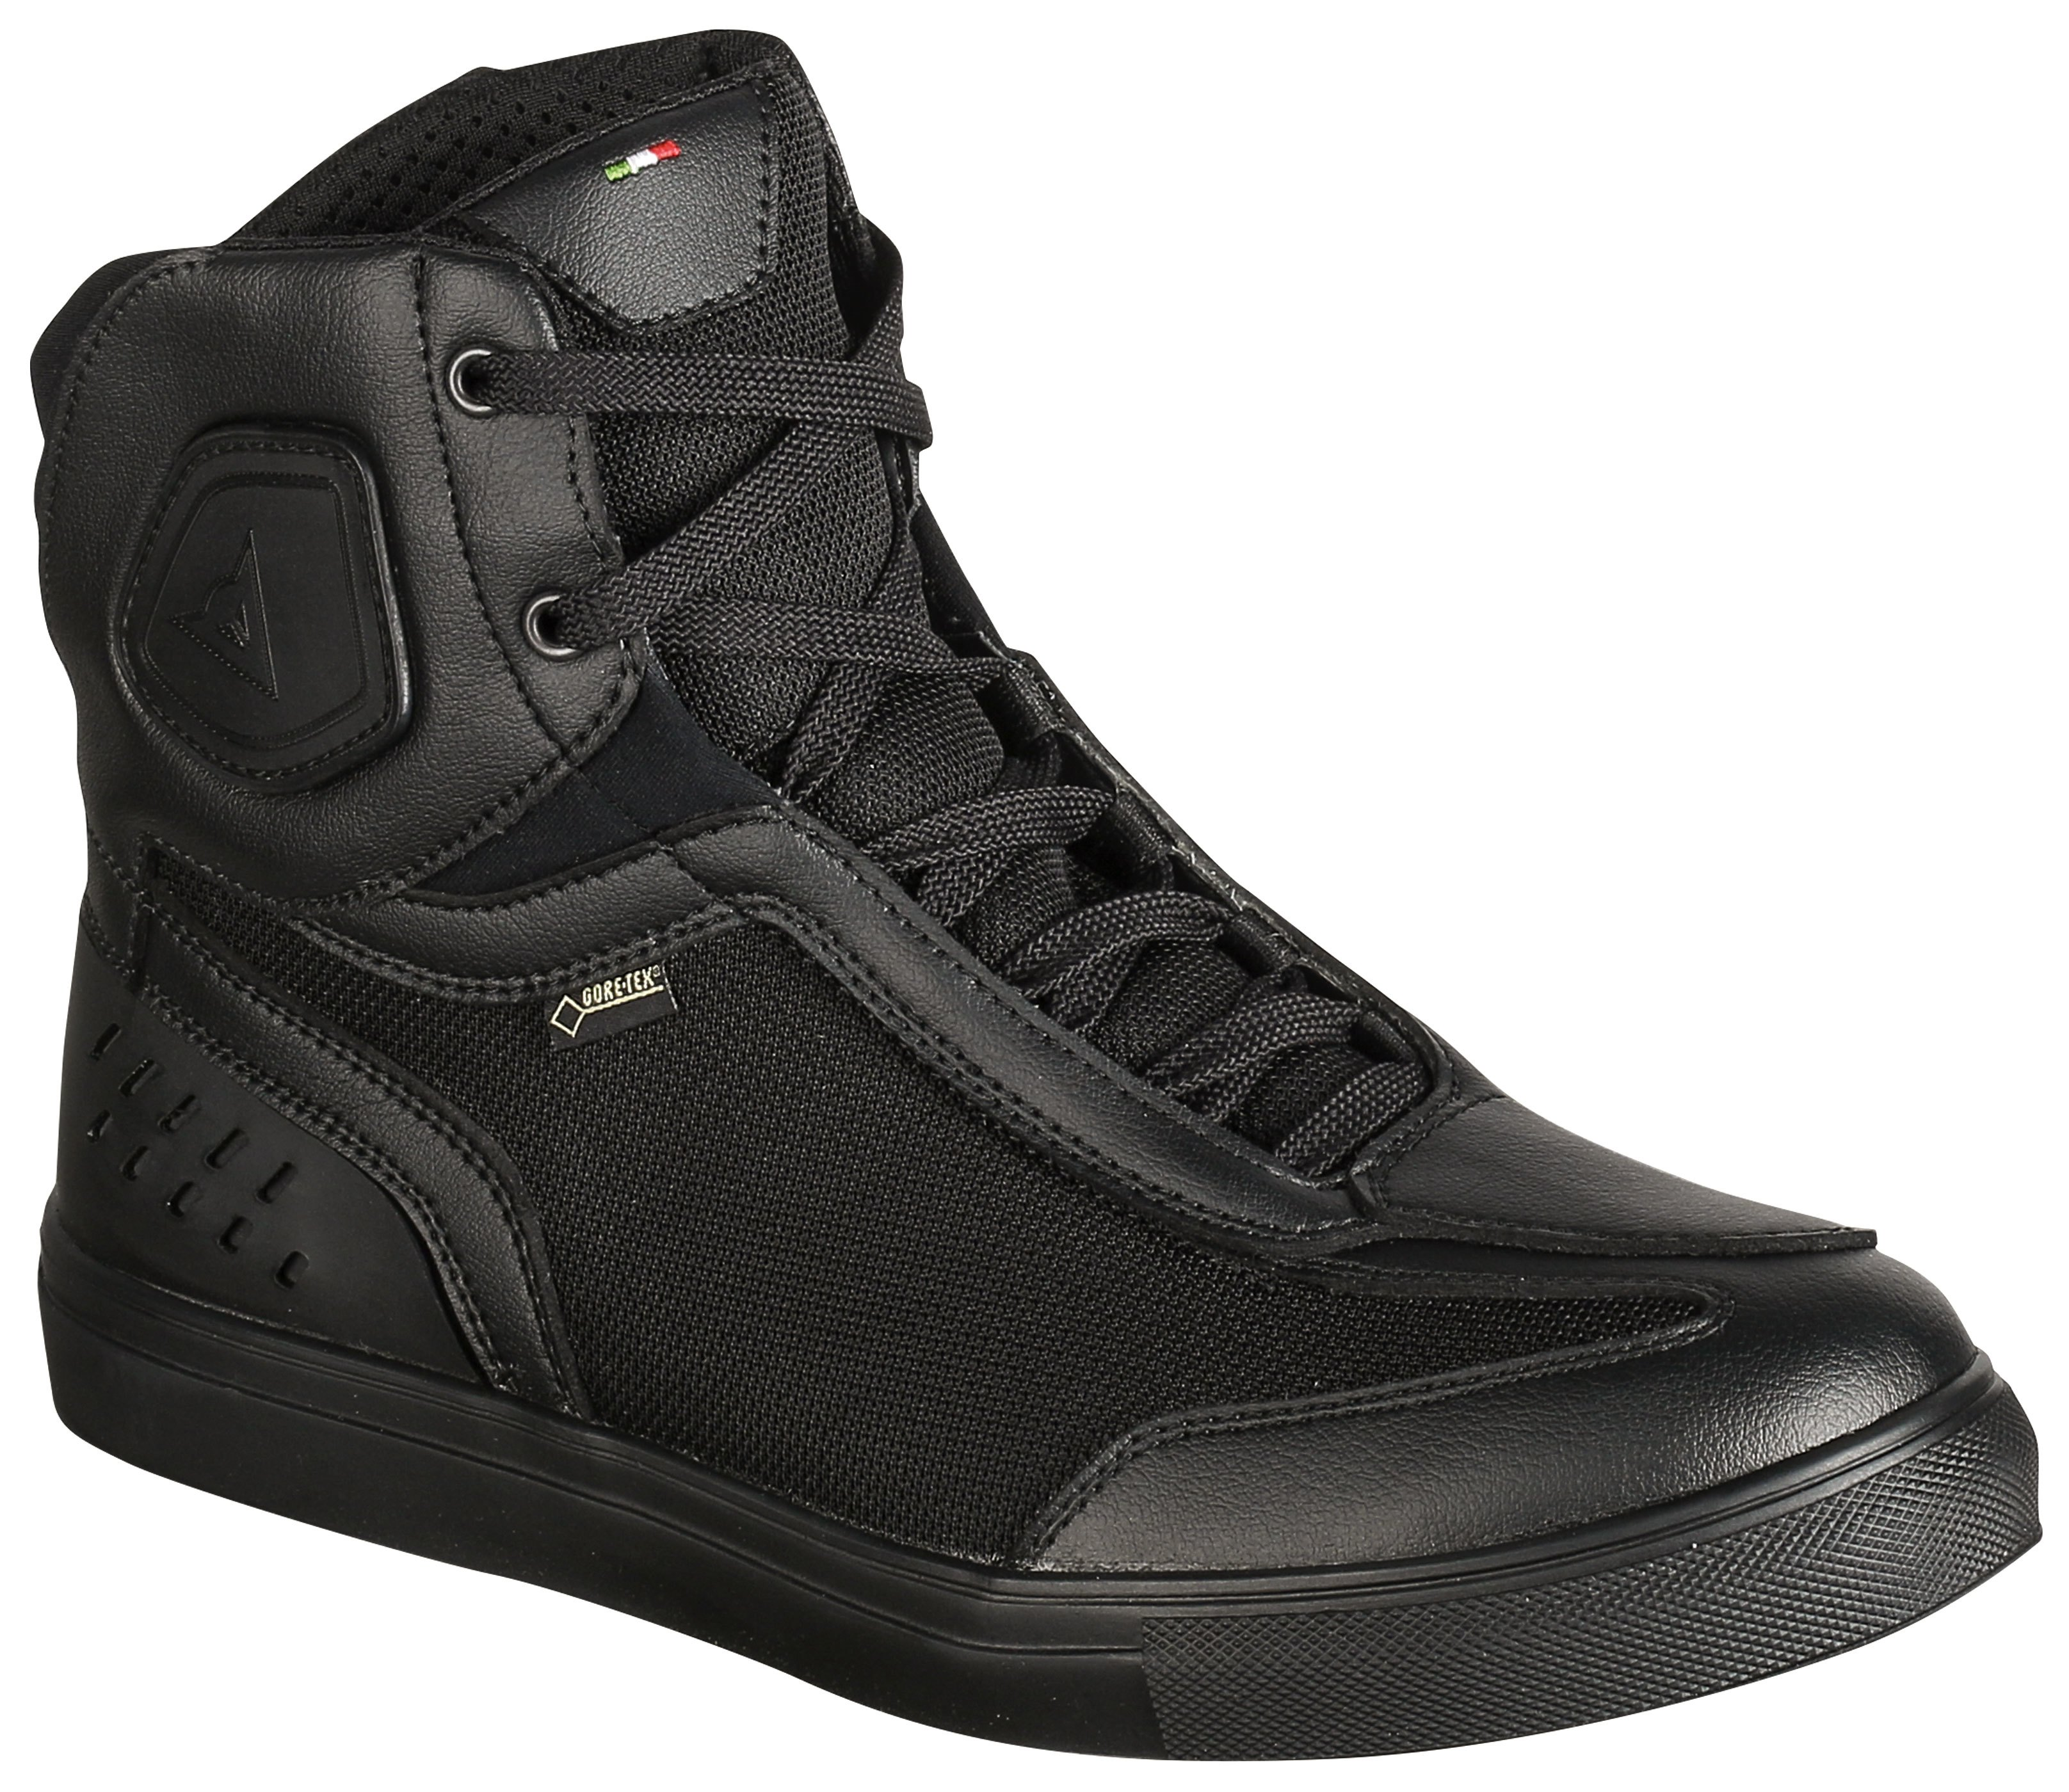 dainese_street_darker_gore_tex_shoes.jpg